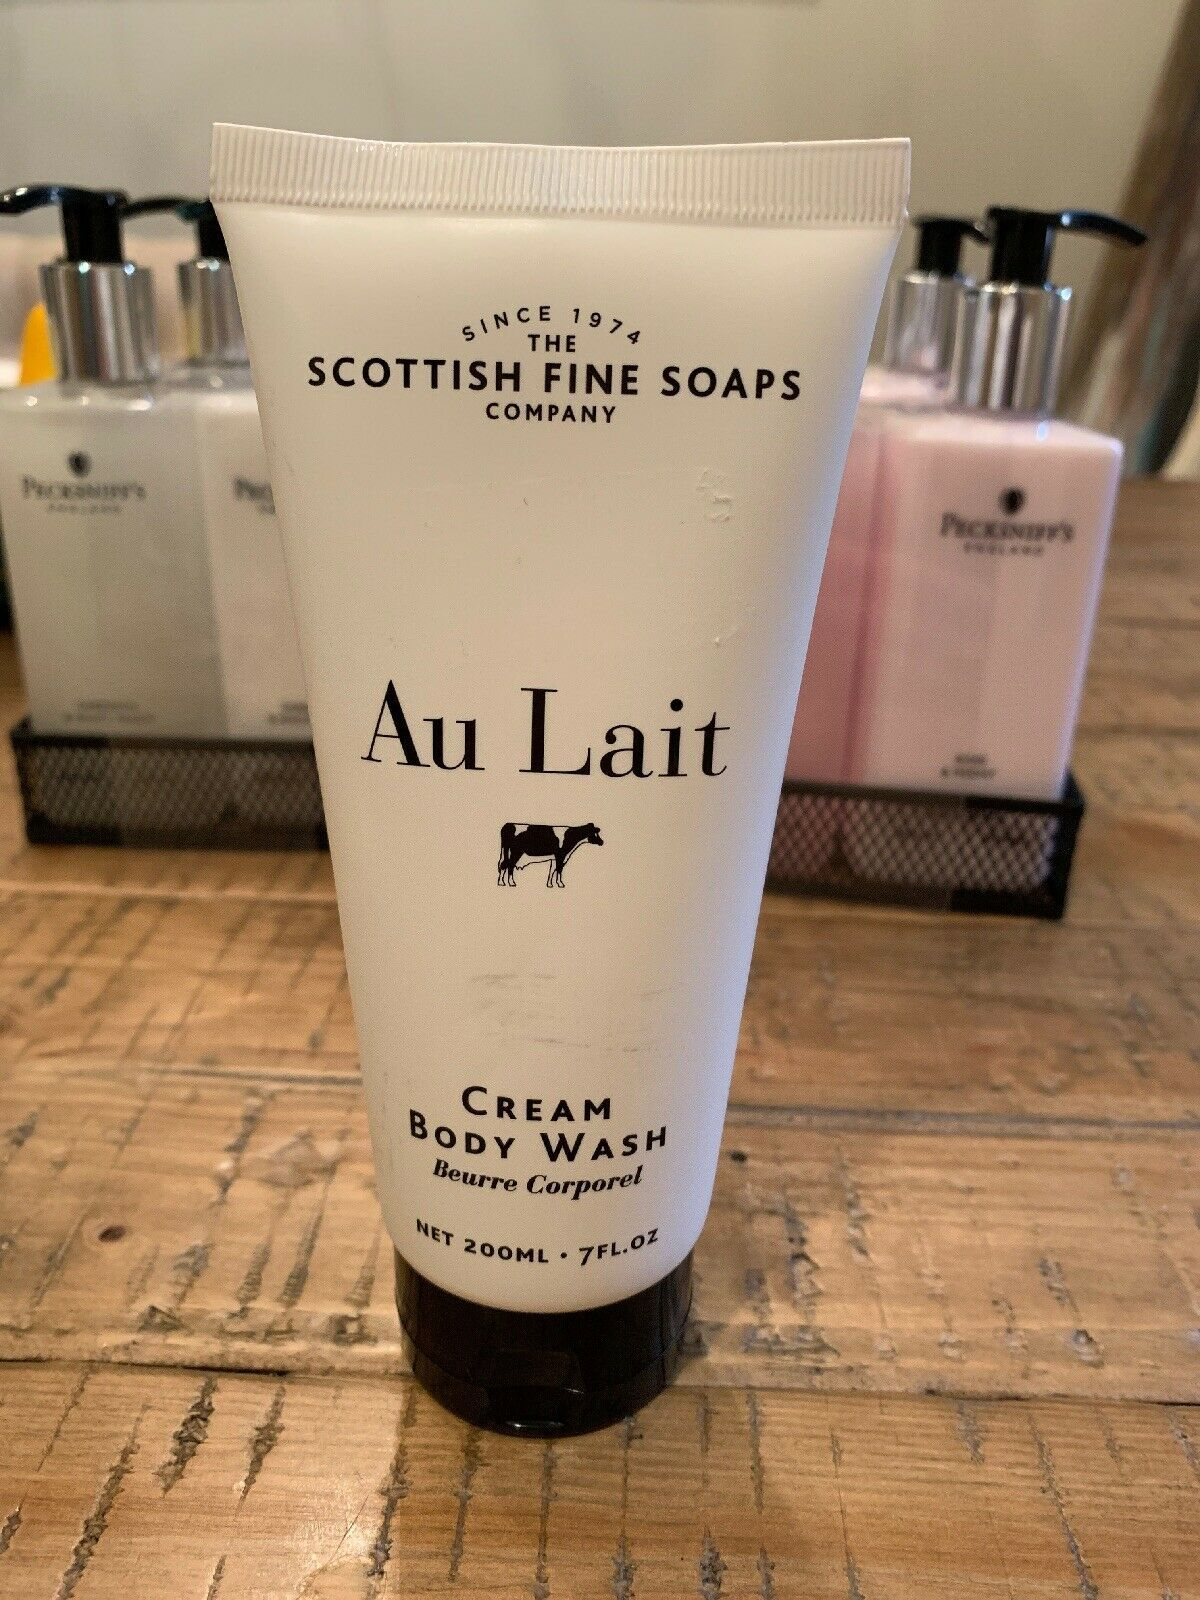 SCOTTISH FINE SOAPS - AU LAIT CREAM BODY WASH - 7Fl oz  200 ML